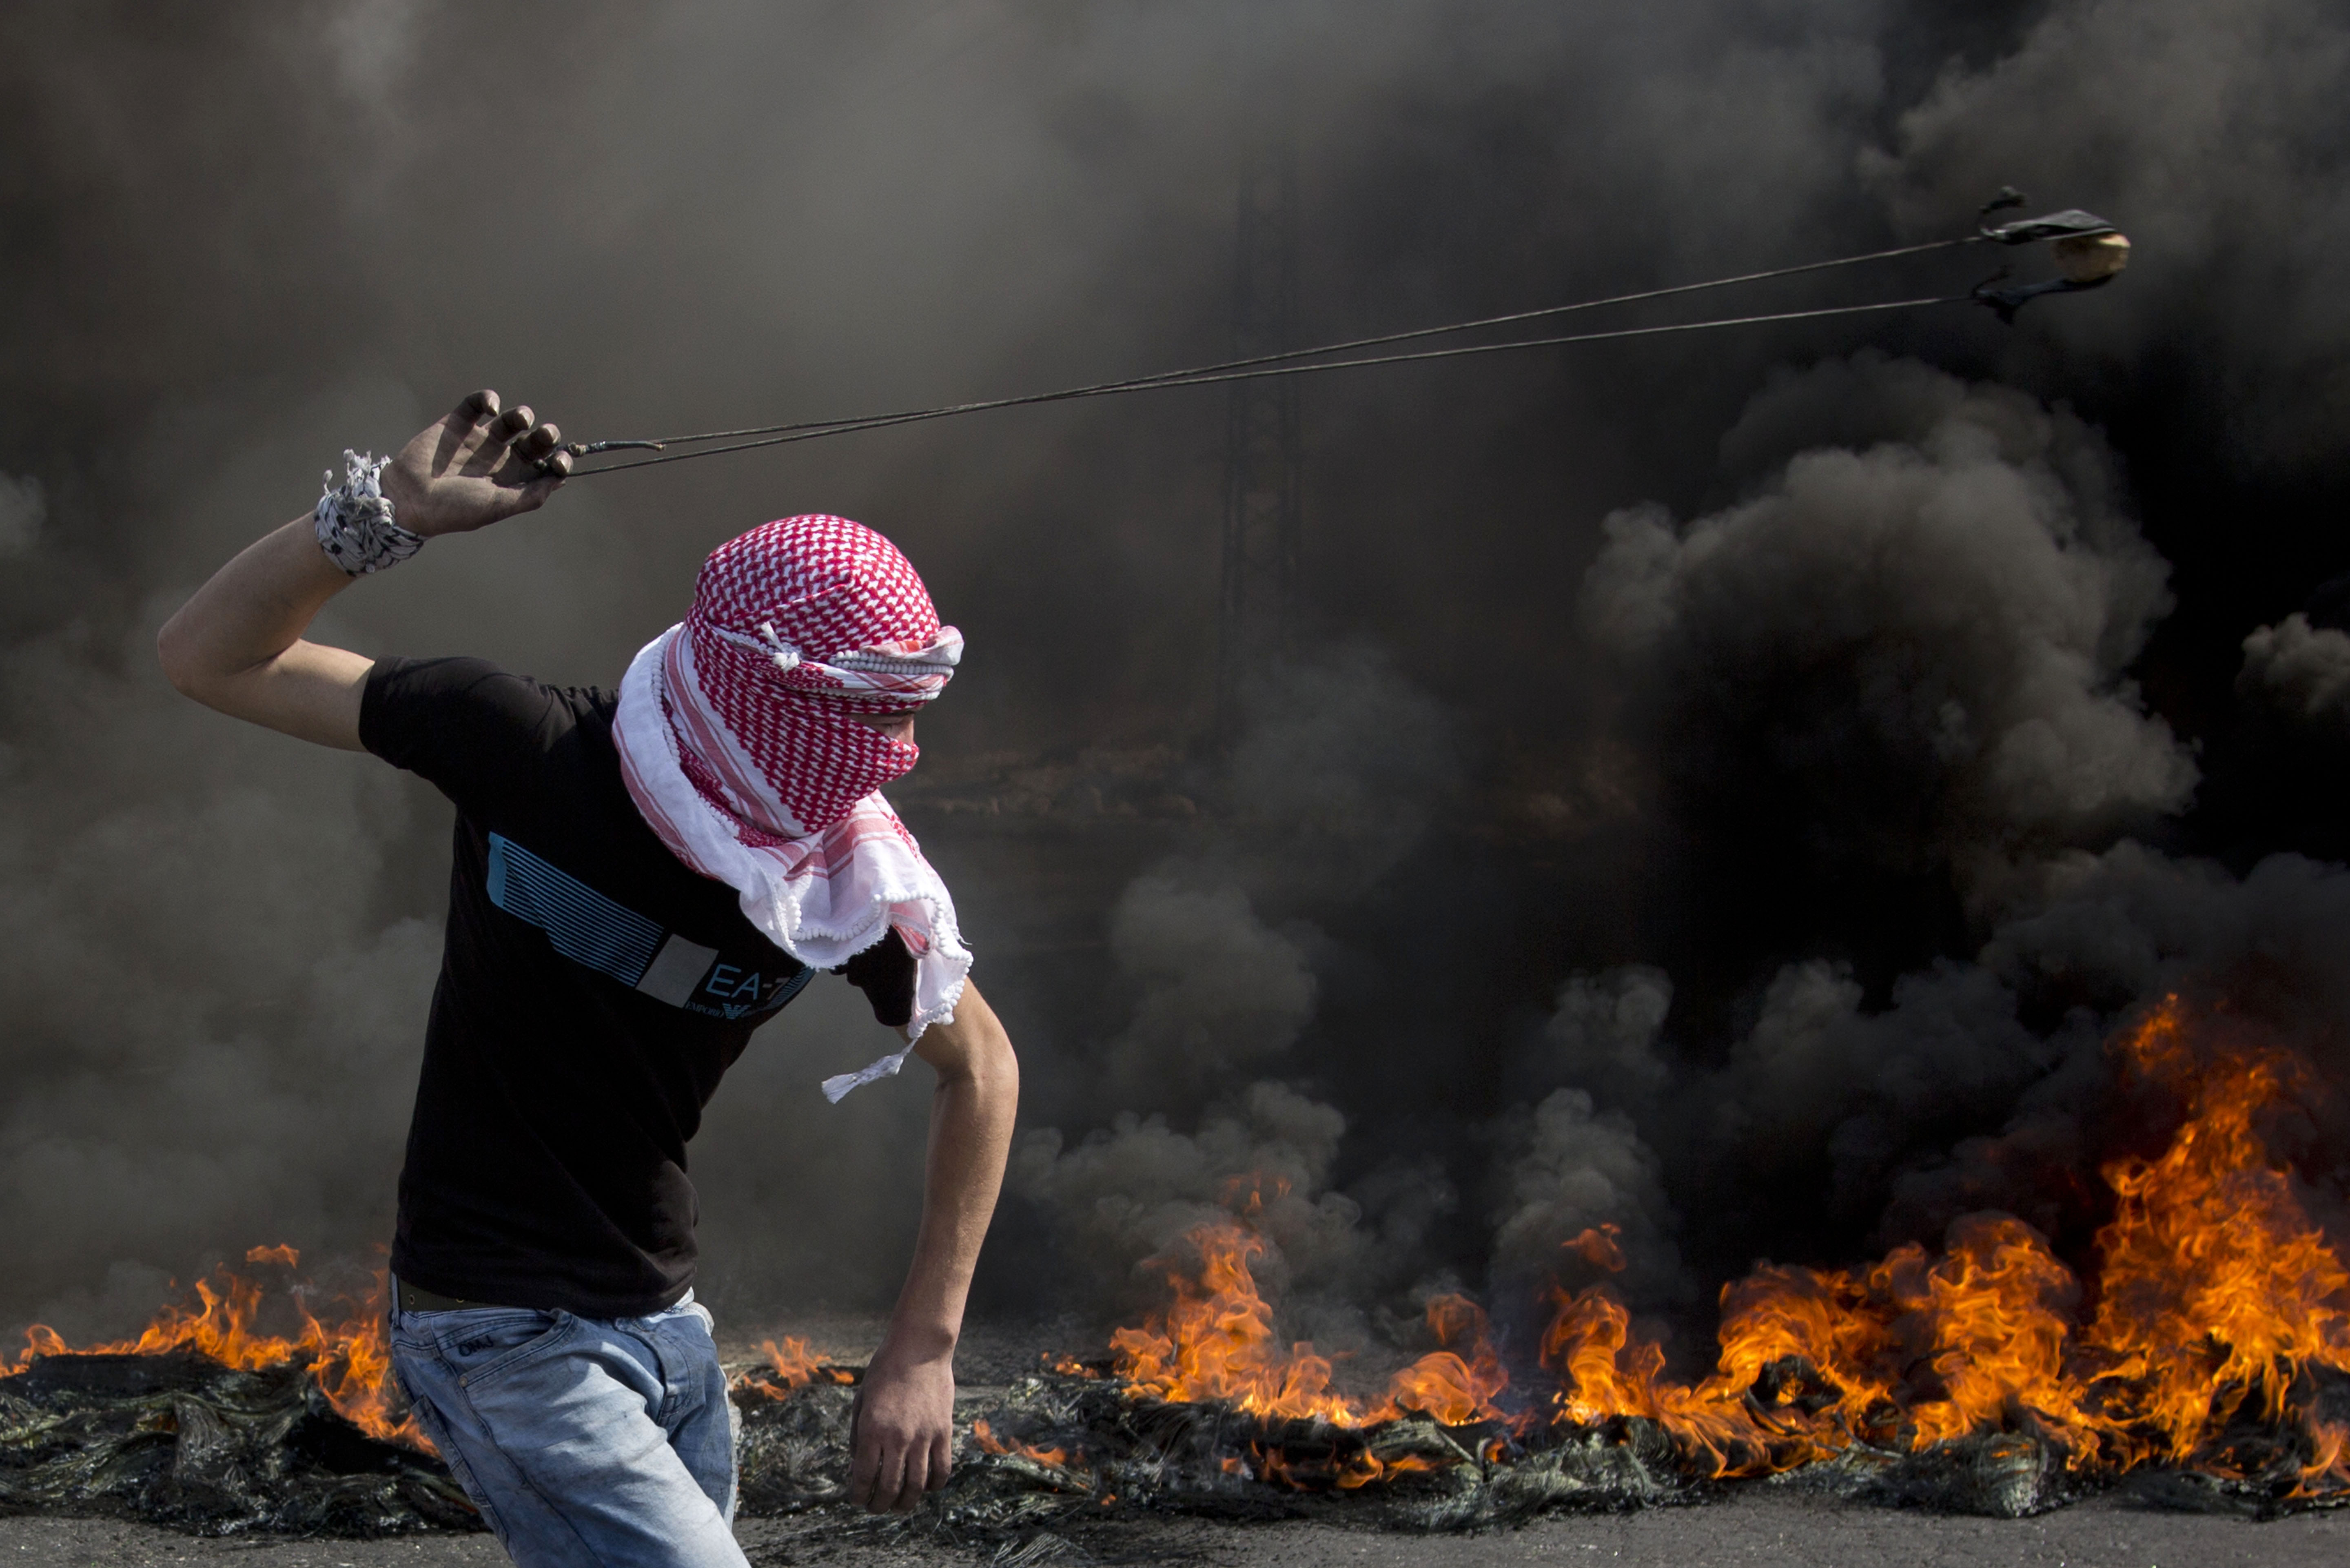 A Palestinian swings a sling during clashes with Israeli troops, near Ramallah, West Bank, Oct. 20, 2015. U.N. Secretary-General Ban Ki-moon called for calm during a surprise visit to Jerusalem on Tuesday.